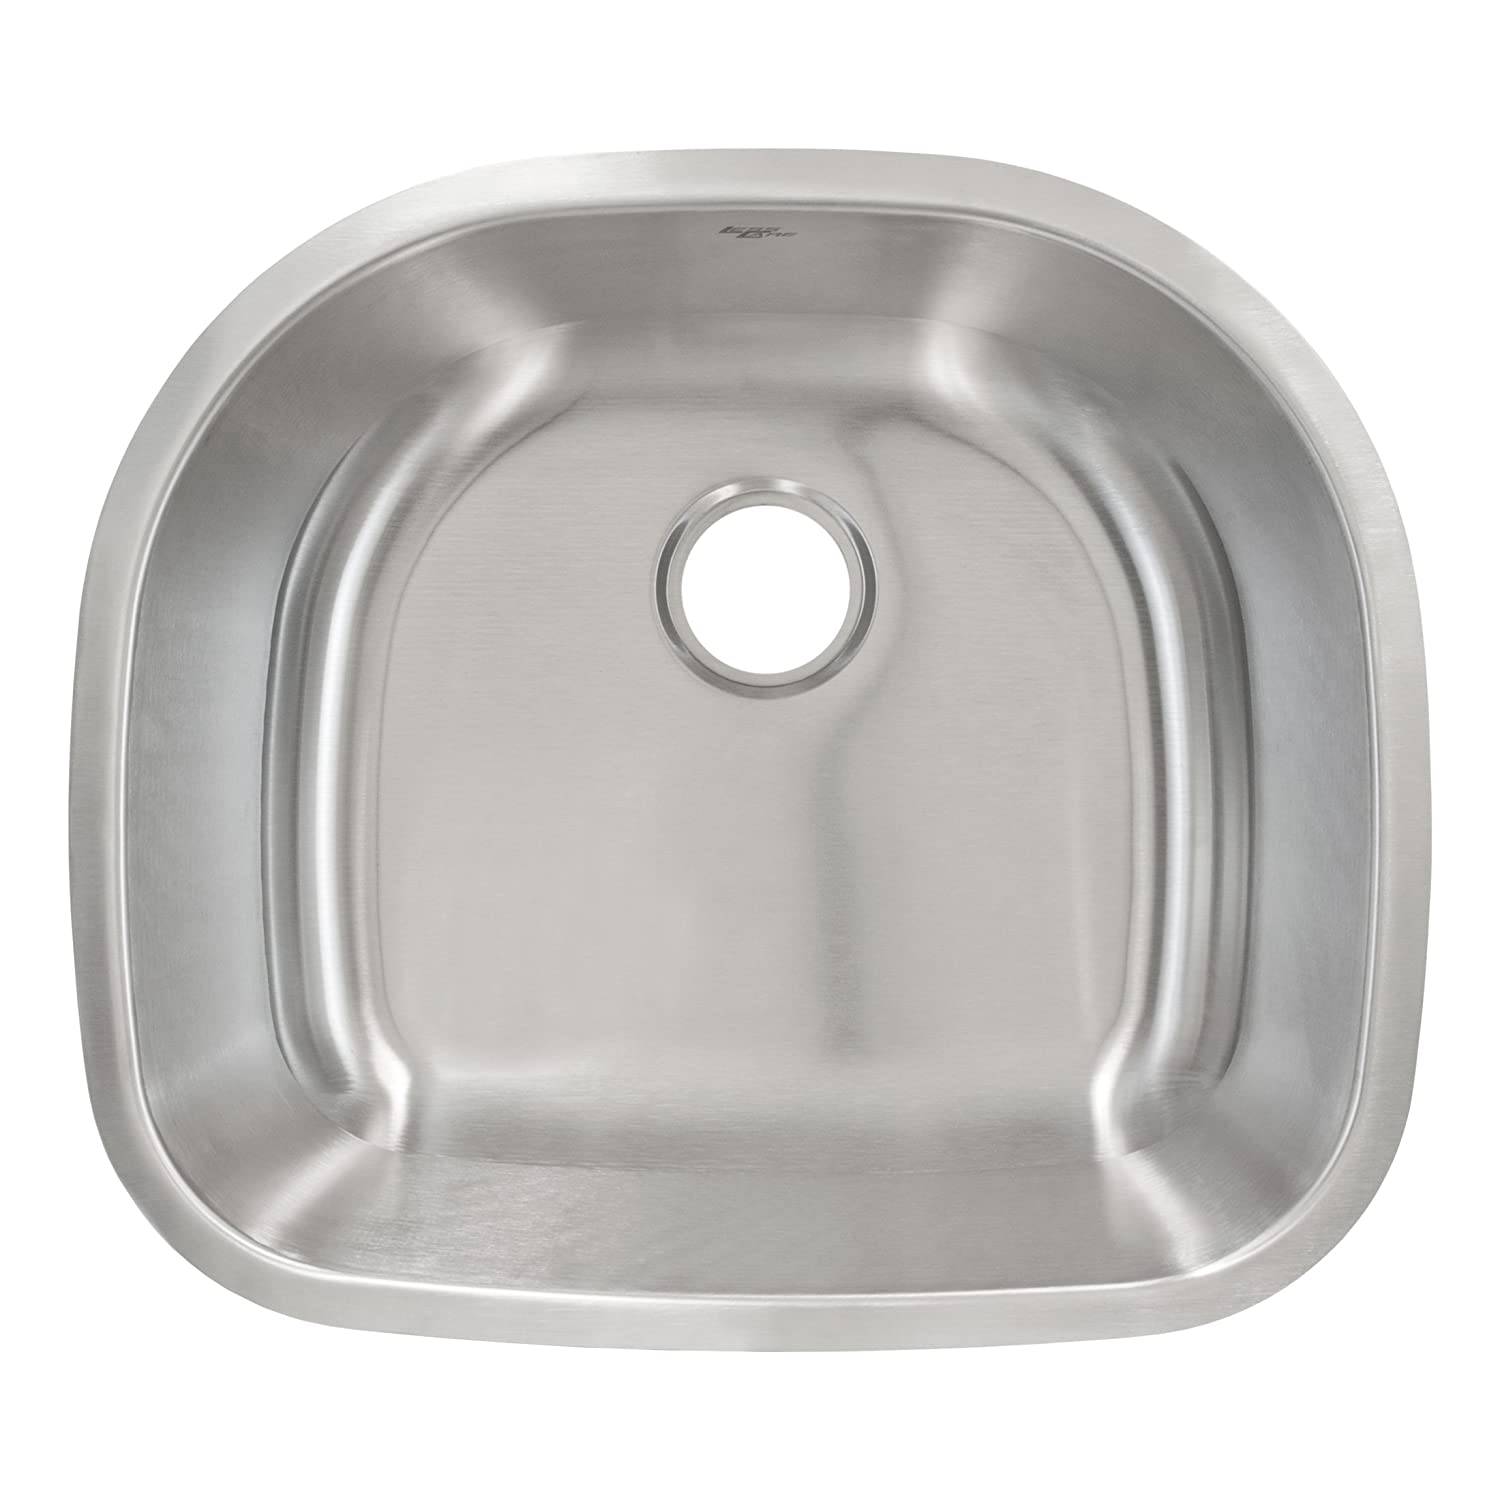 LessCare LCL105 Stainless Steel Kitchen Sink